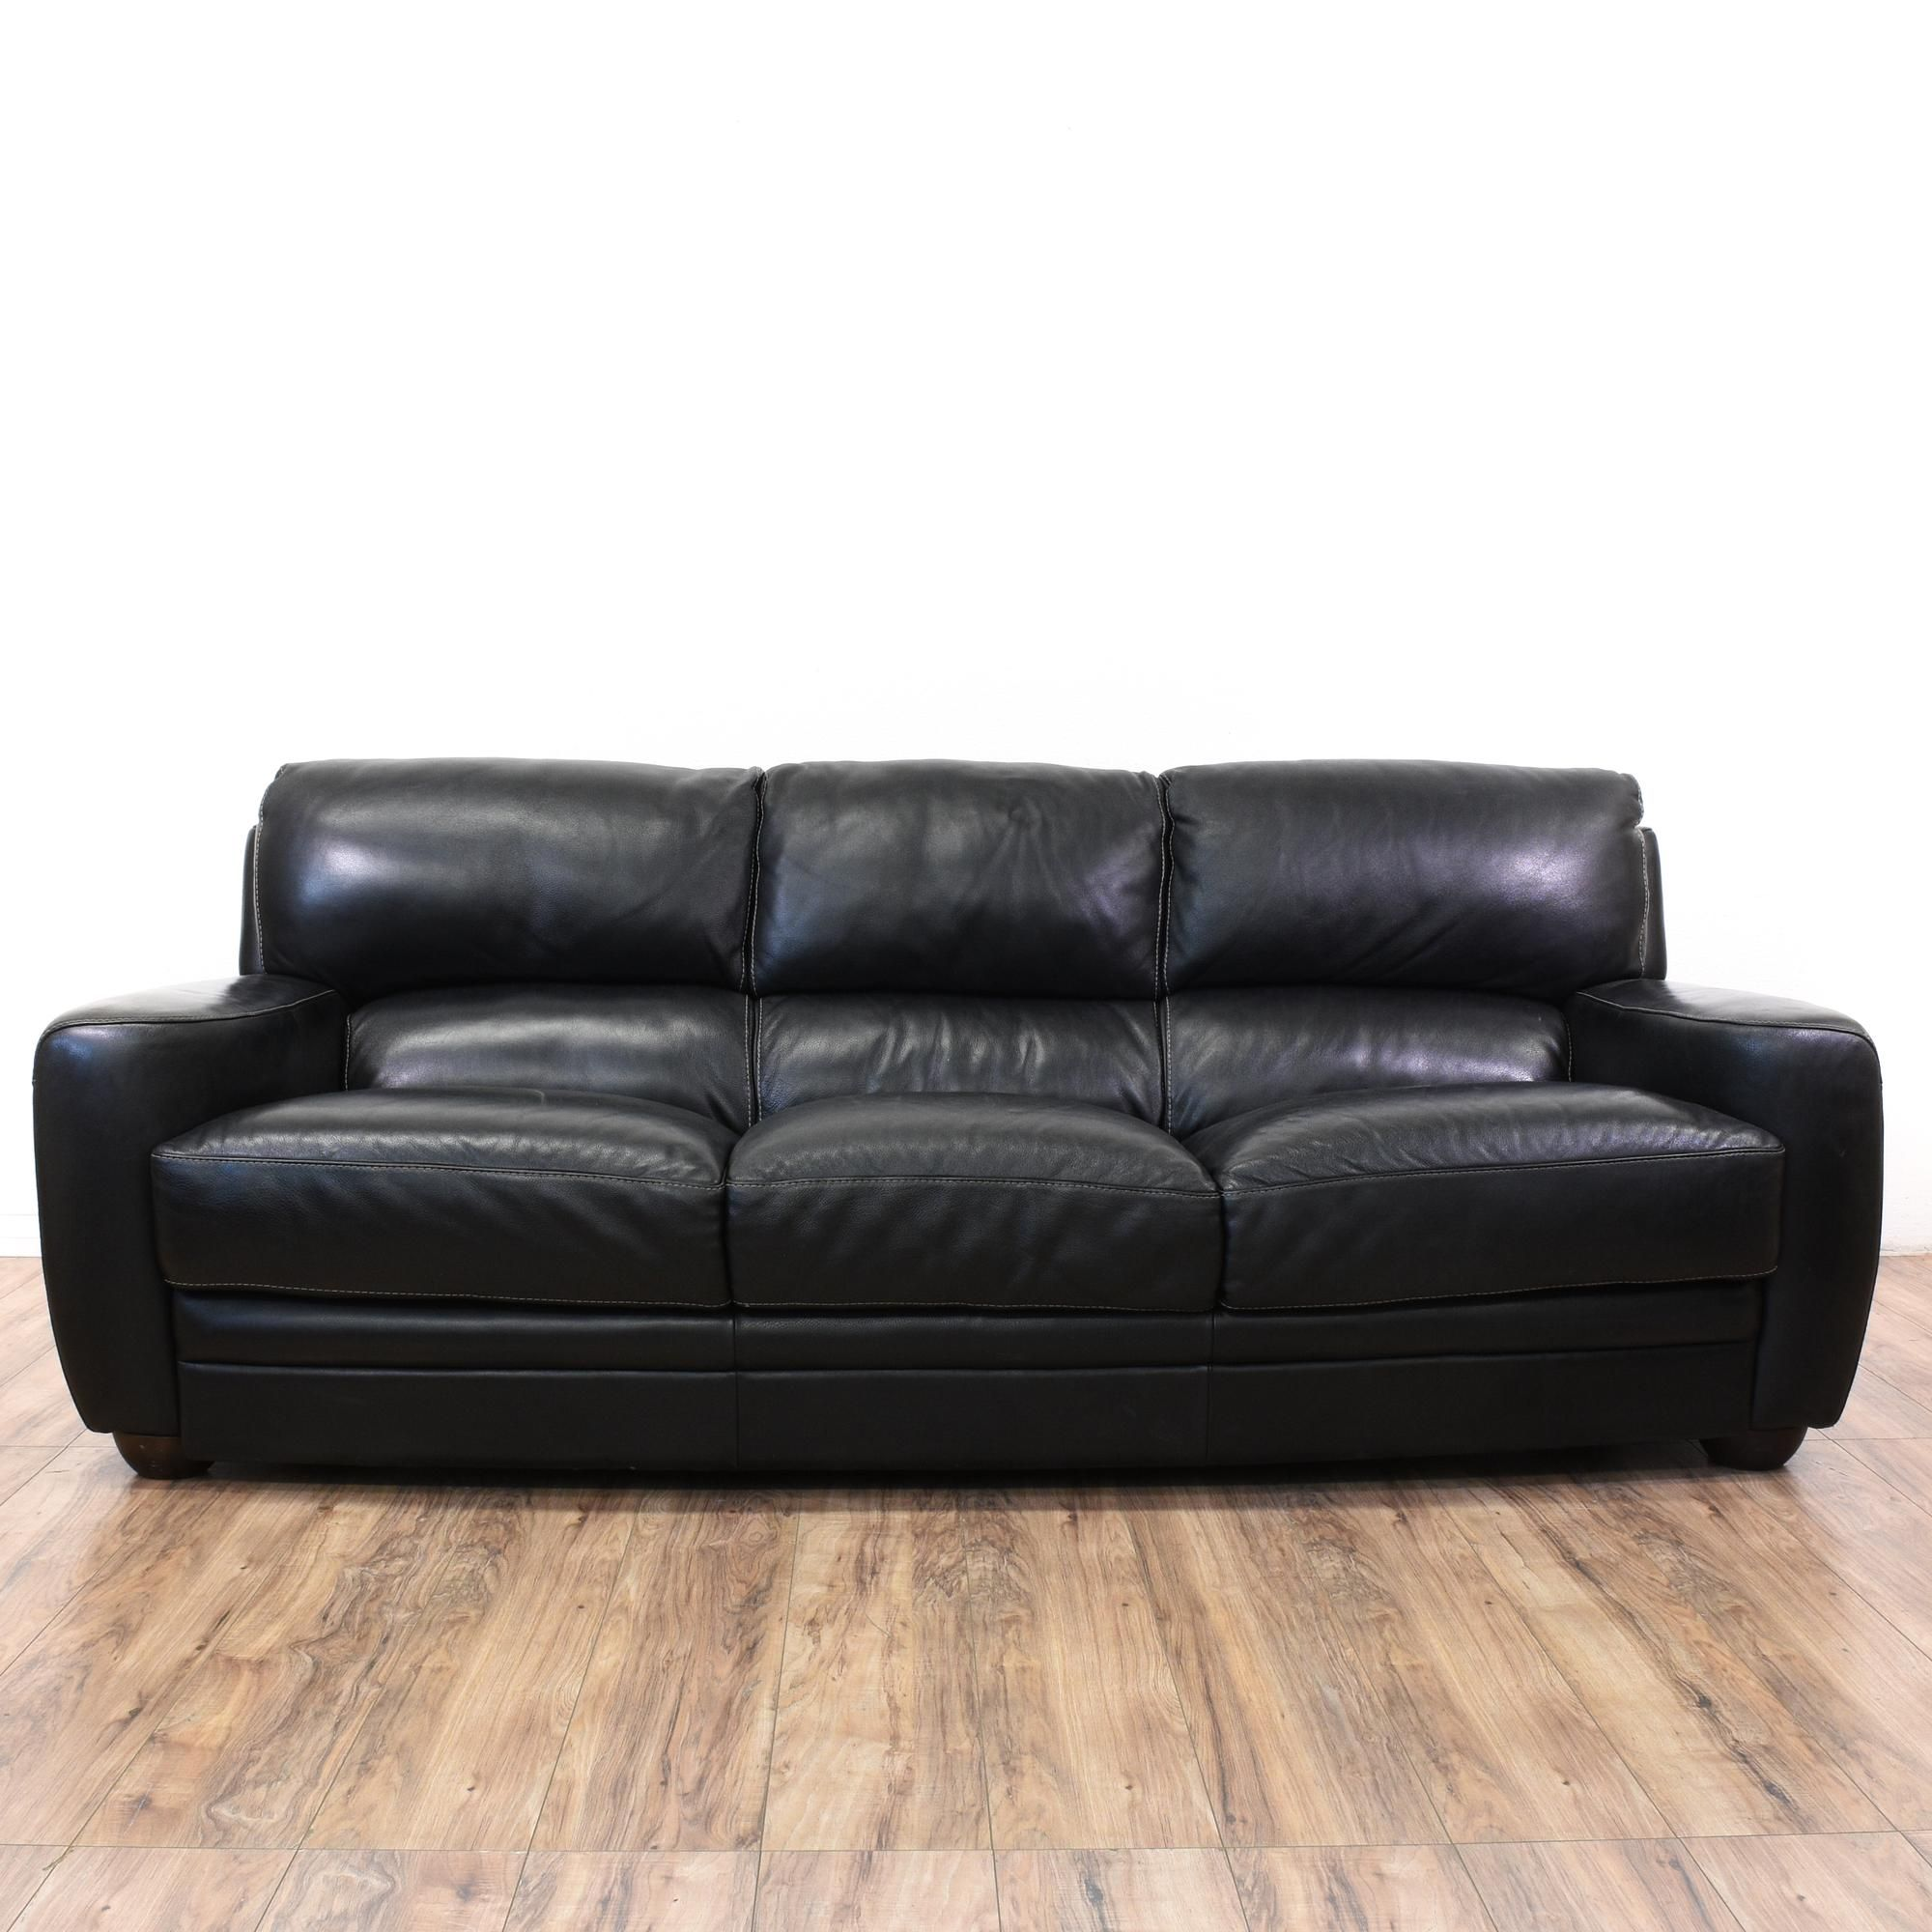 This Sofitalia Sofa Is Upholstered In A Durable Leather With A Shiny Black Finish This Contem Wayfair Leather Sofa Italian Leather Sofa Vintage Leather Sofa